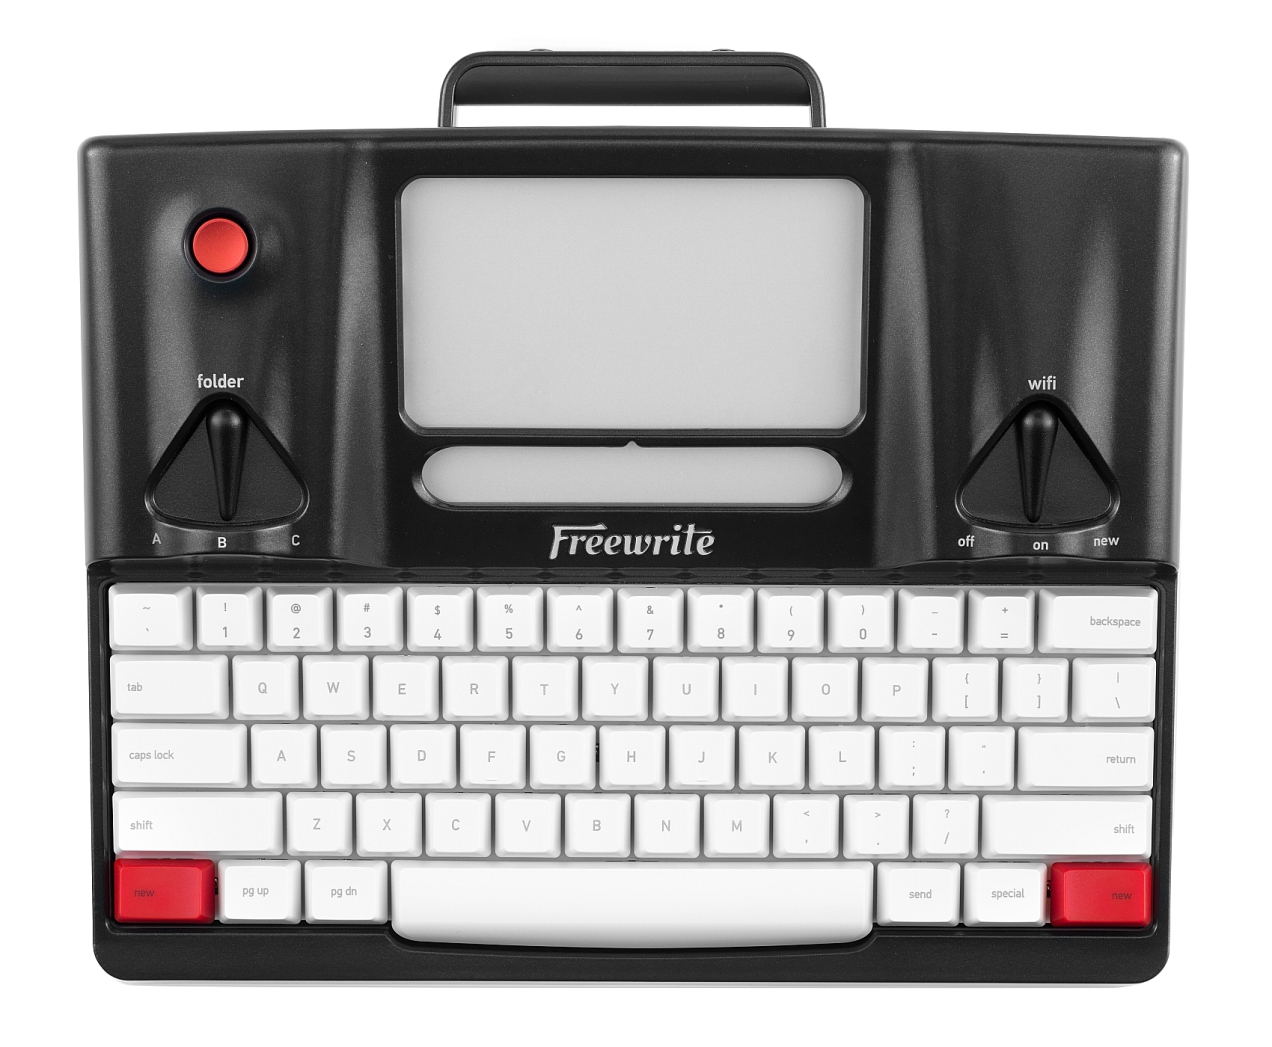 Astrohaus Freewrite - top